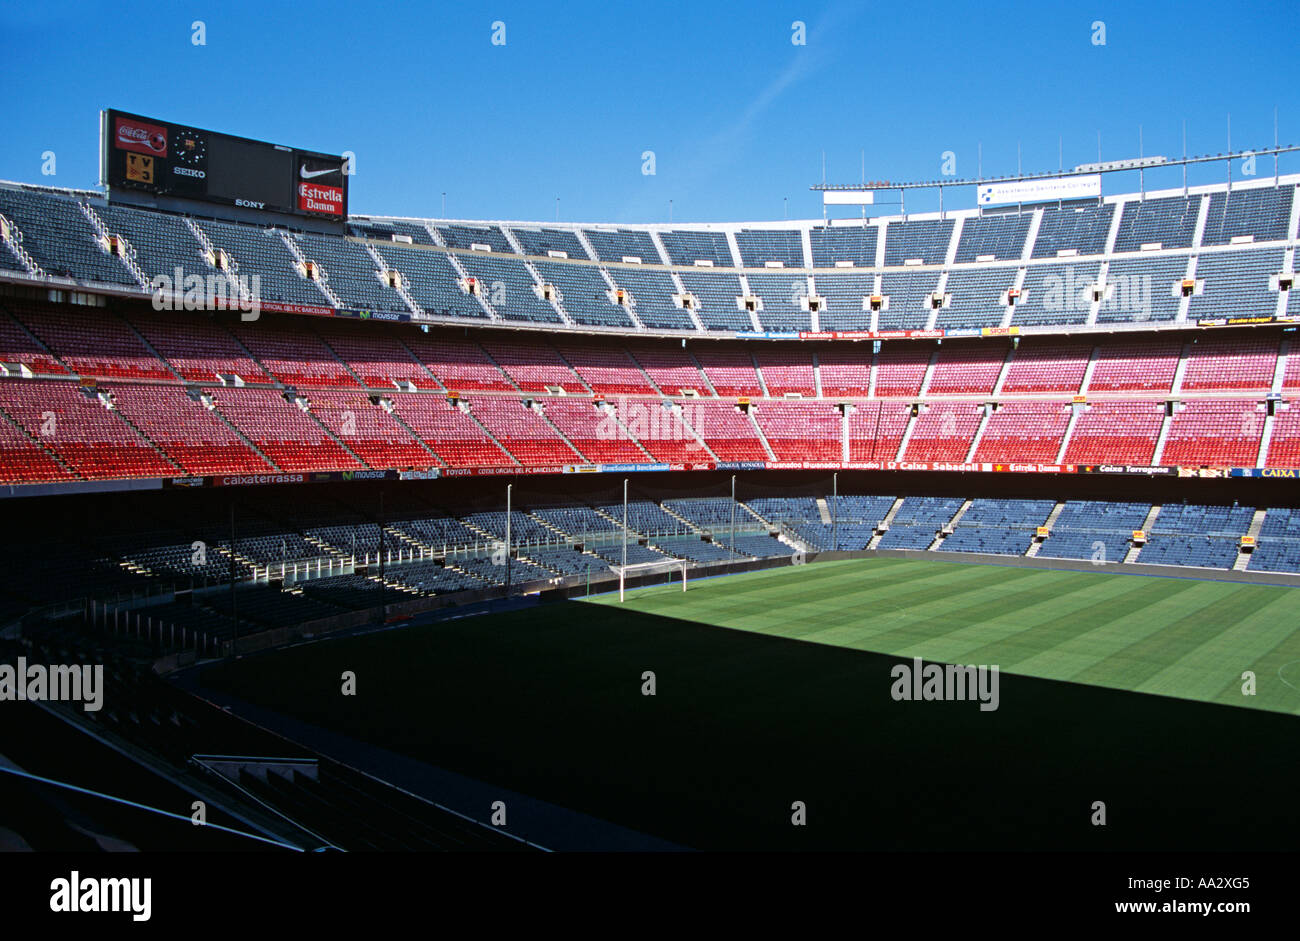 View of football pitch, Nou Camp Stadium, Barcelona Football Club, Barcelona, Spain - Stock Image